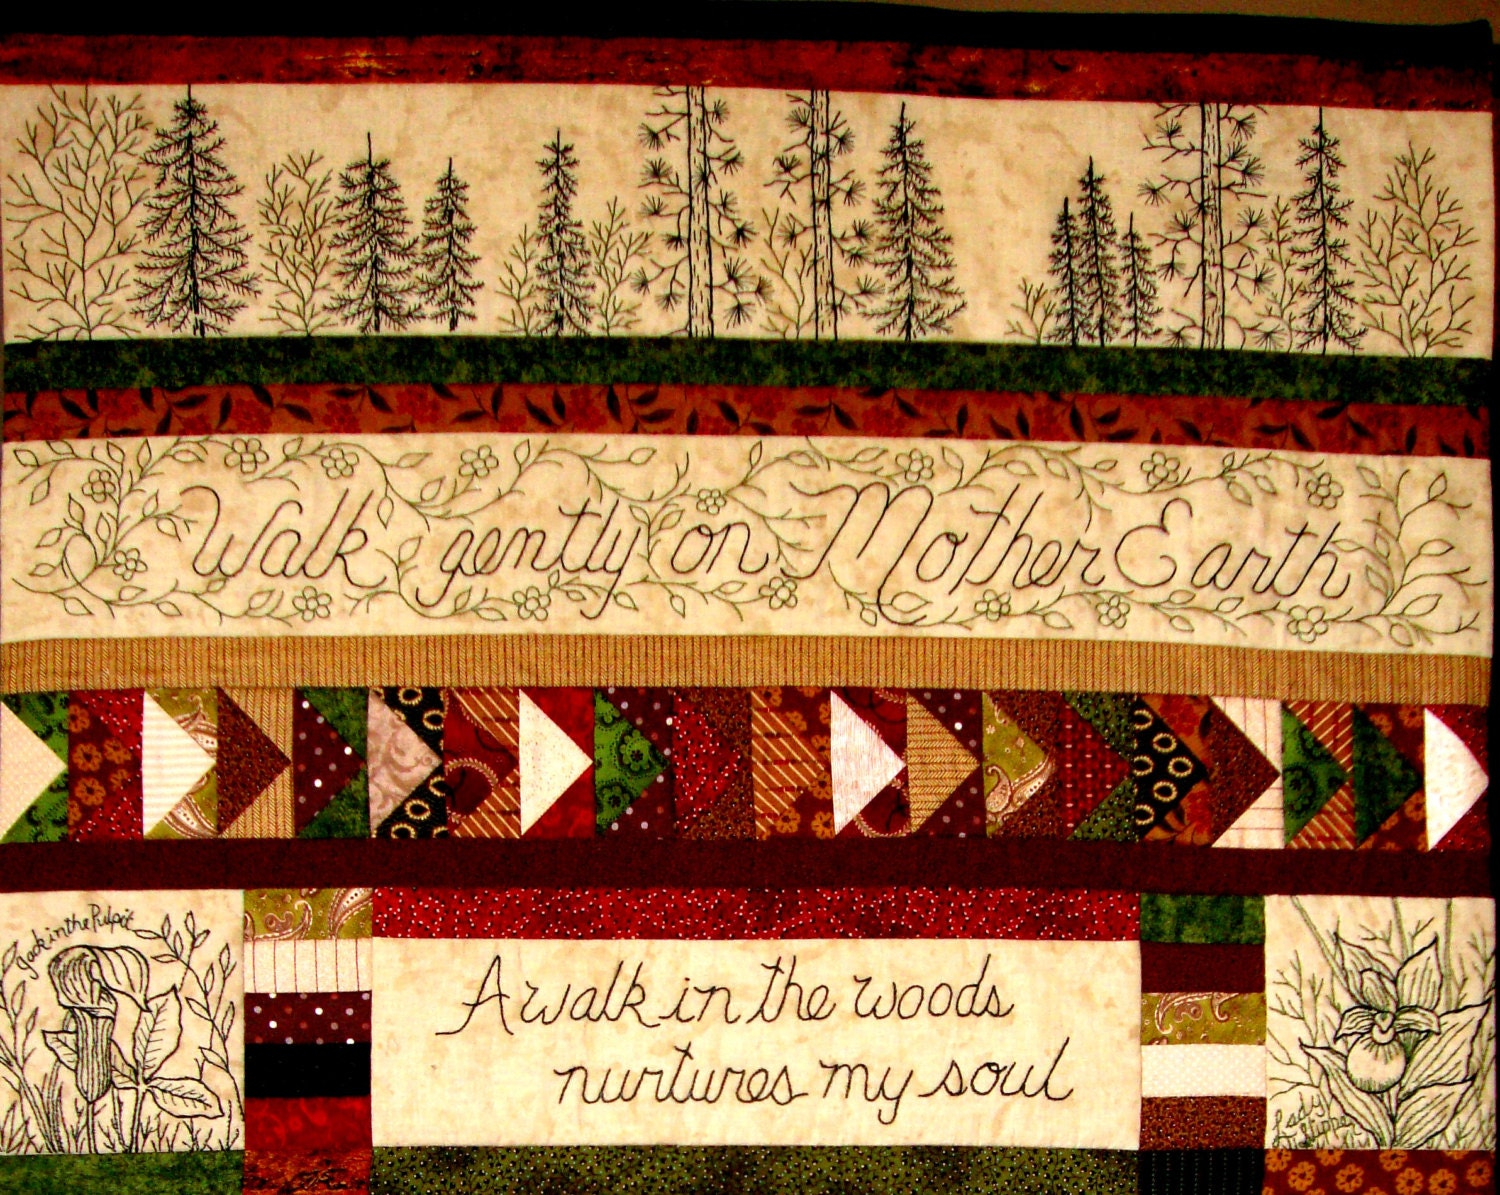 Woodland Walk In Earth Tones Quilt Pattern  12 Hand Embroidery Blocks,  Label & Quilt Finishing Pattern  By Beth Ritter